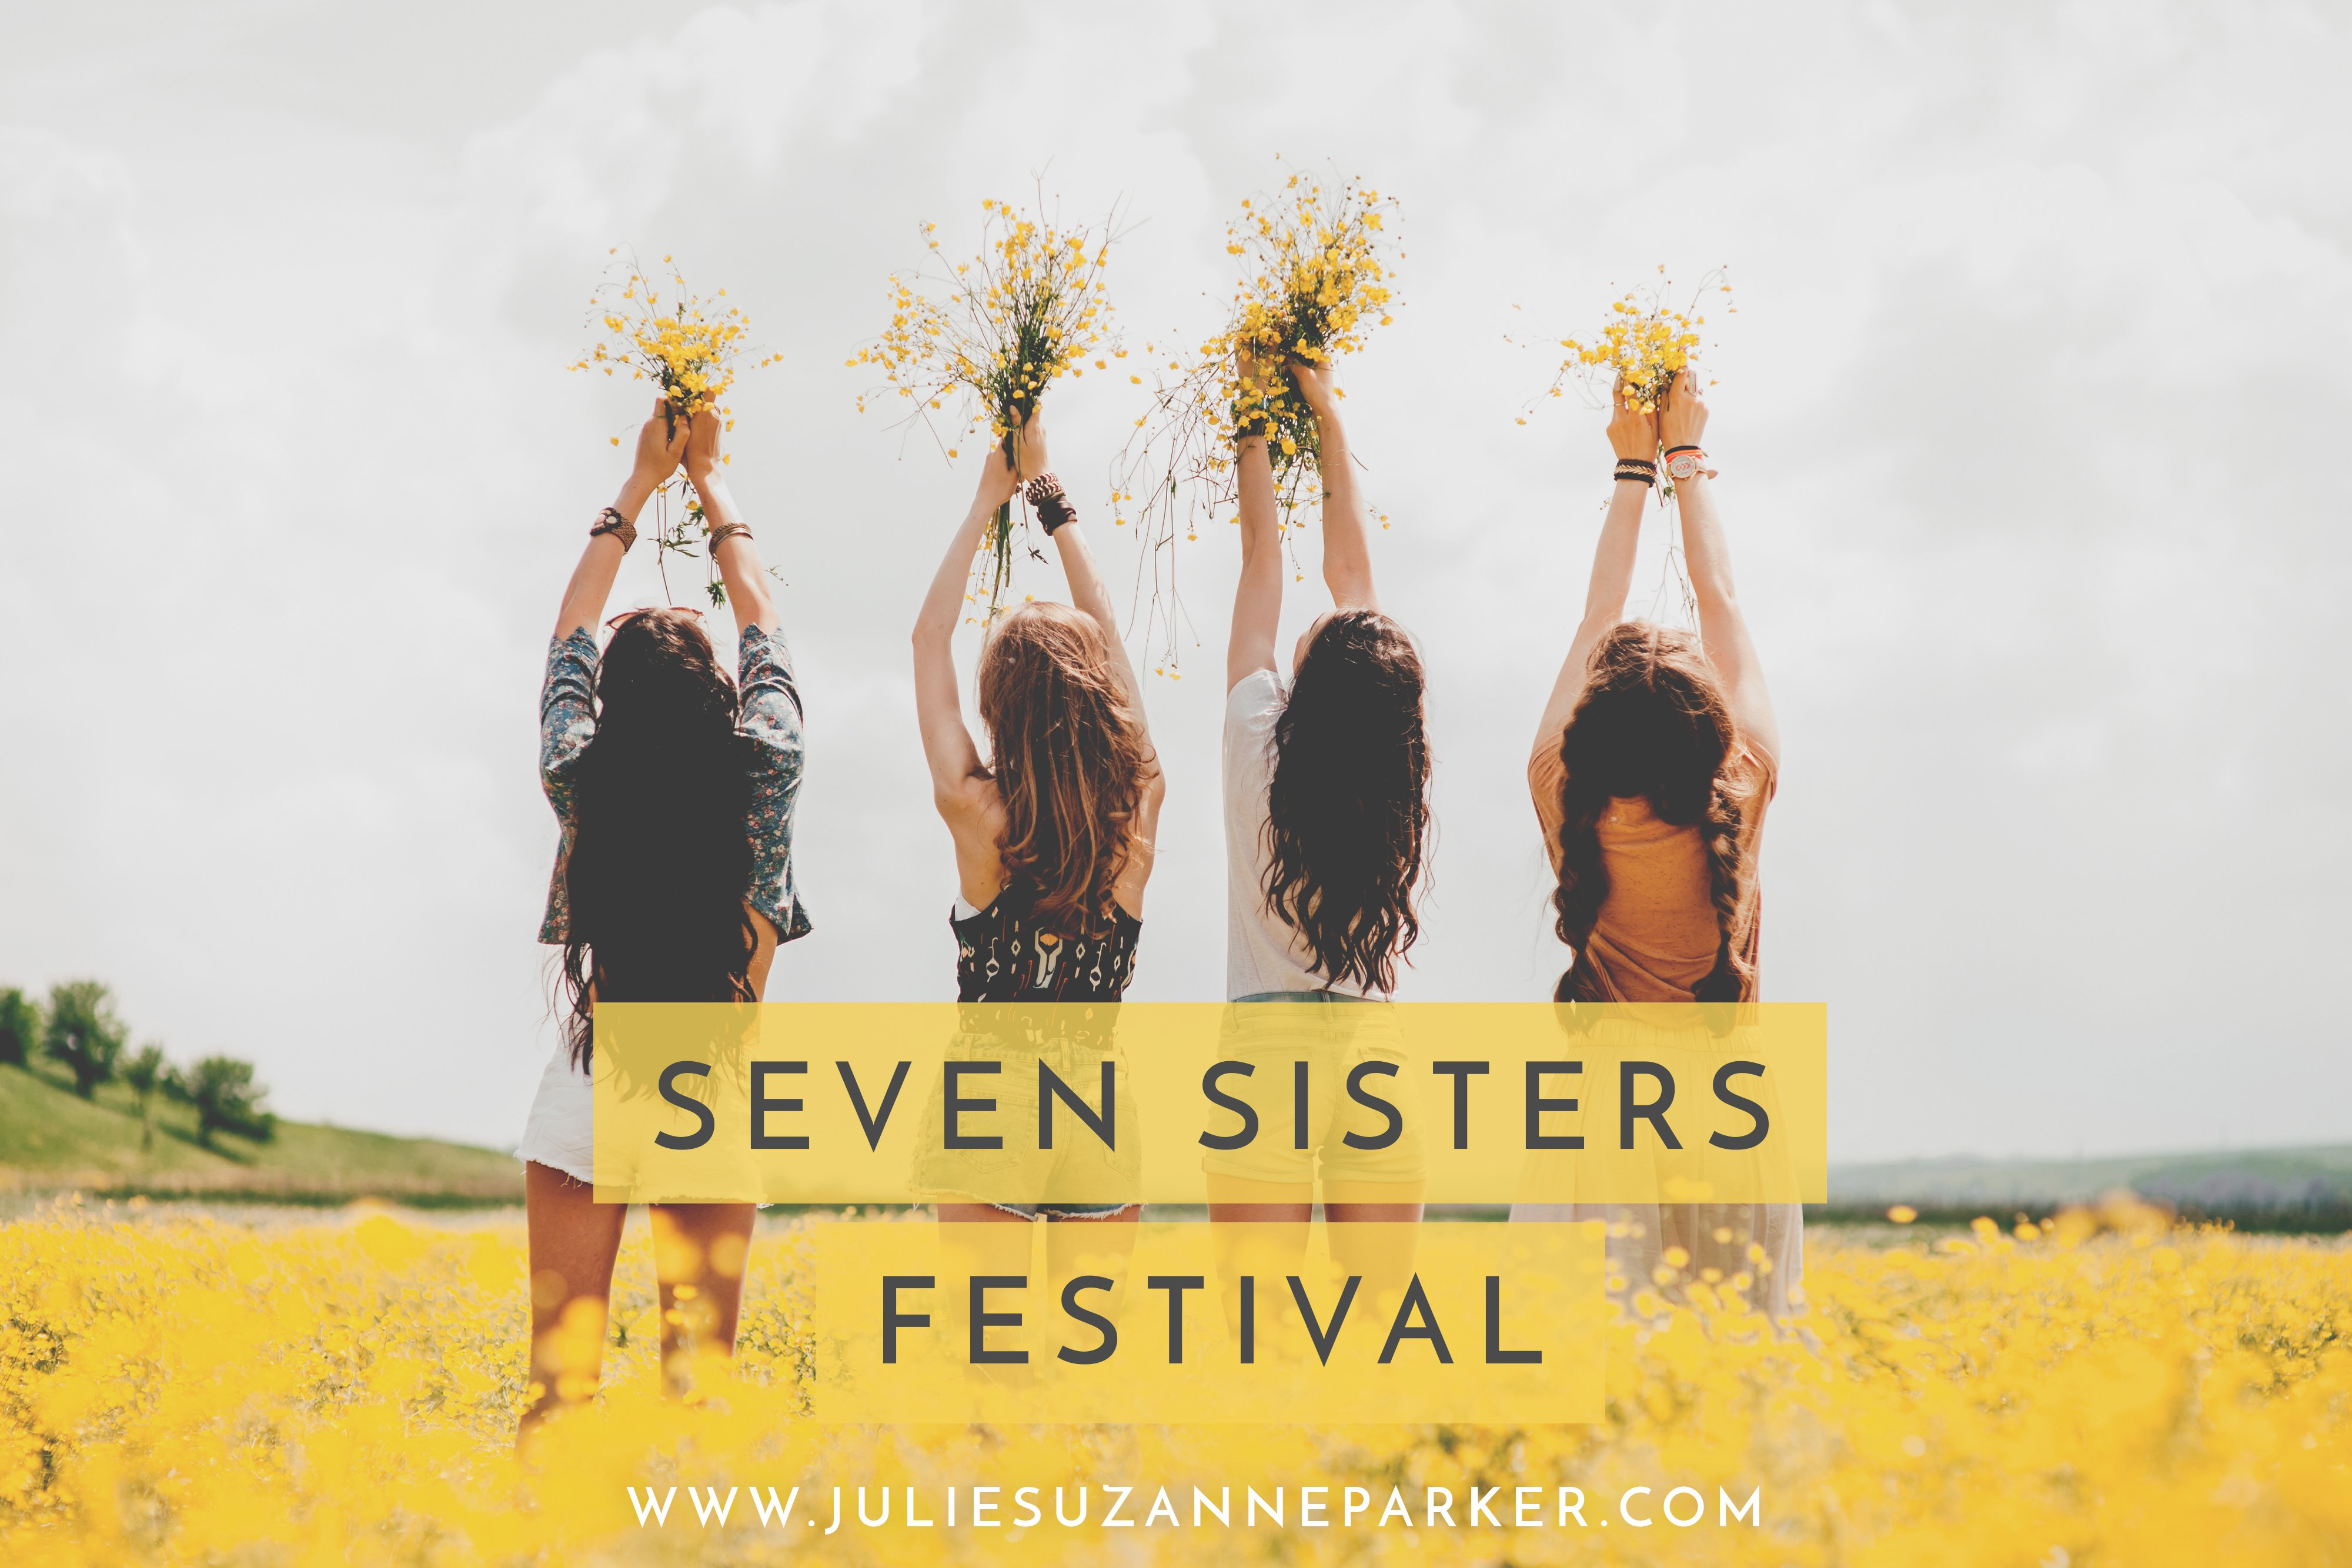 Seven Sisters Festival: A Review